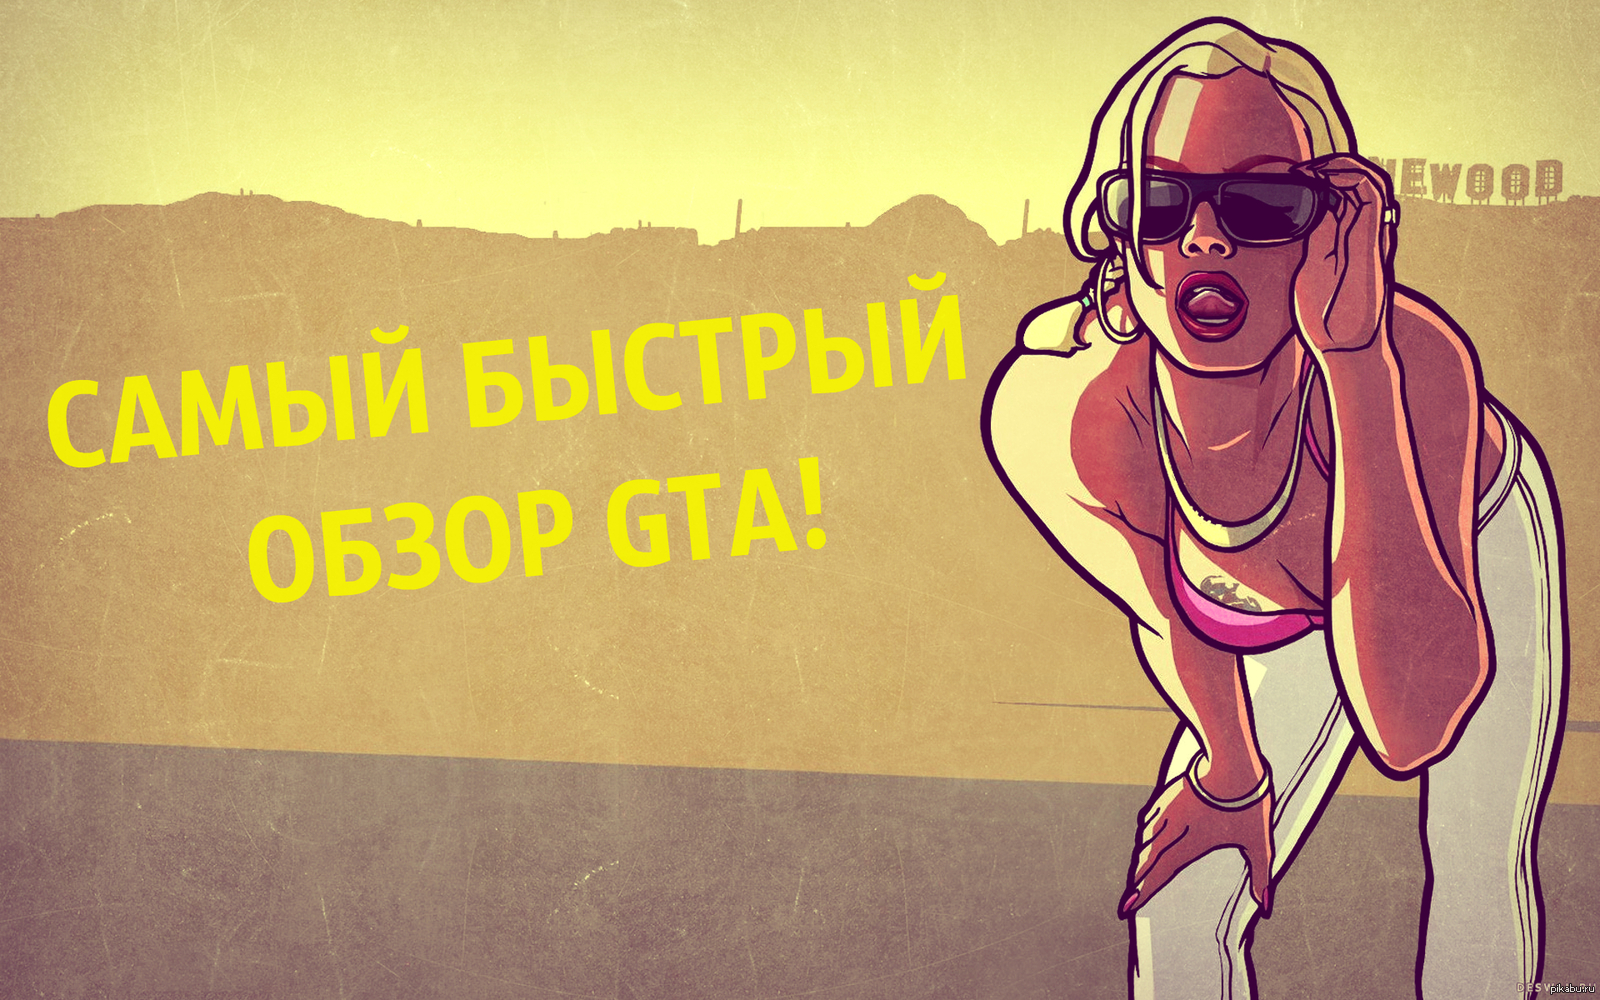 Gta san andreas toon porn erotic pictures